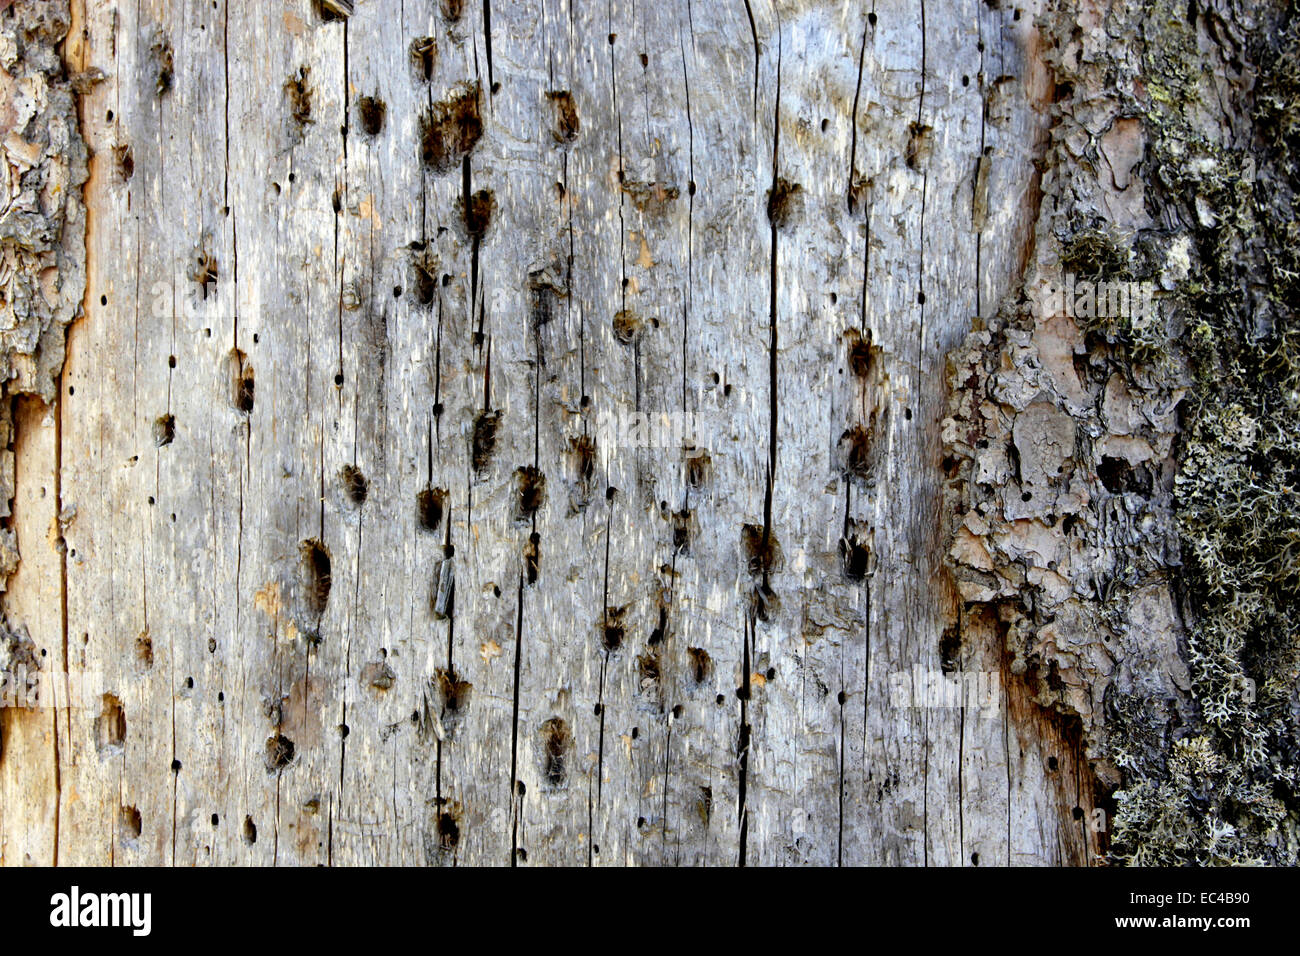 Dead spruces full of woodpecker holes - Stock Image